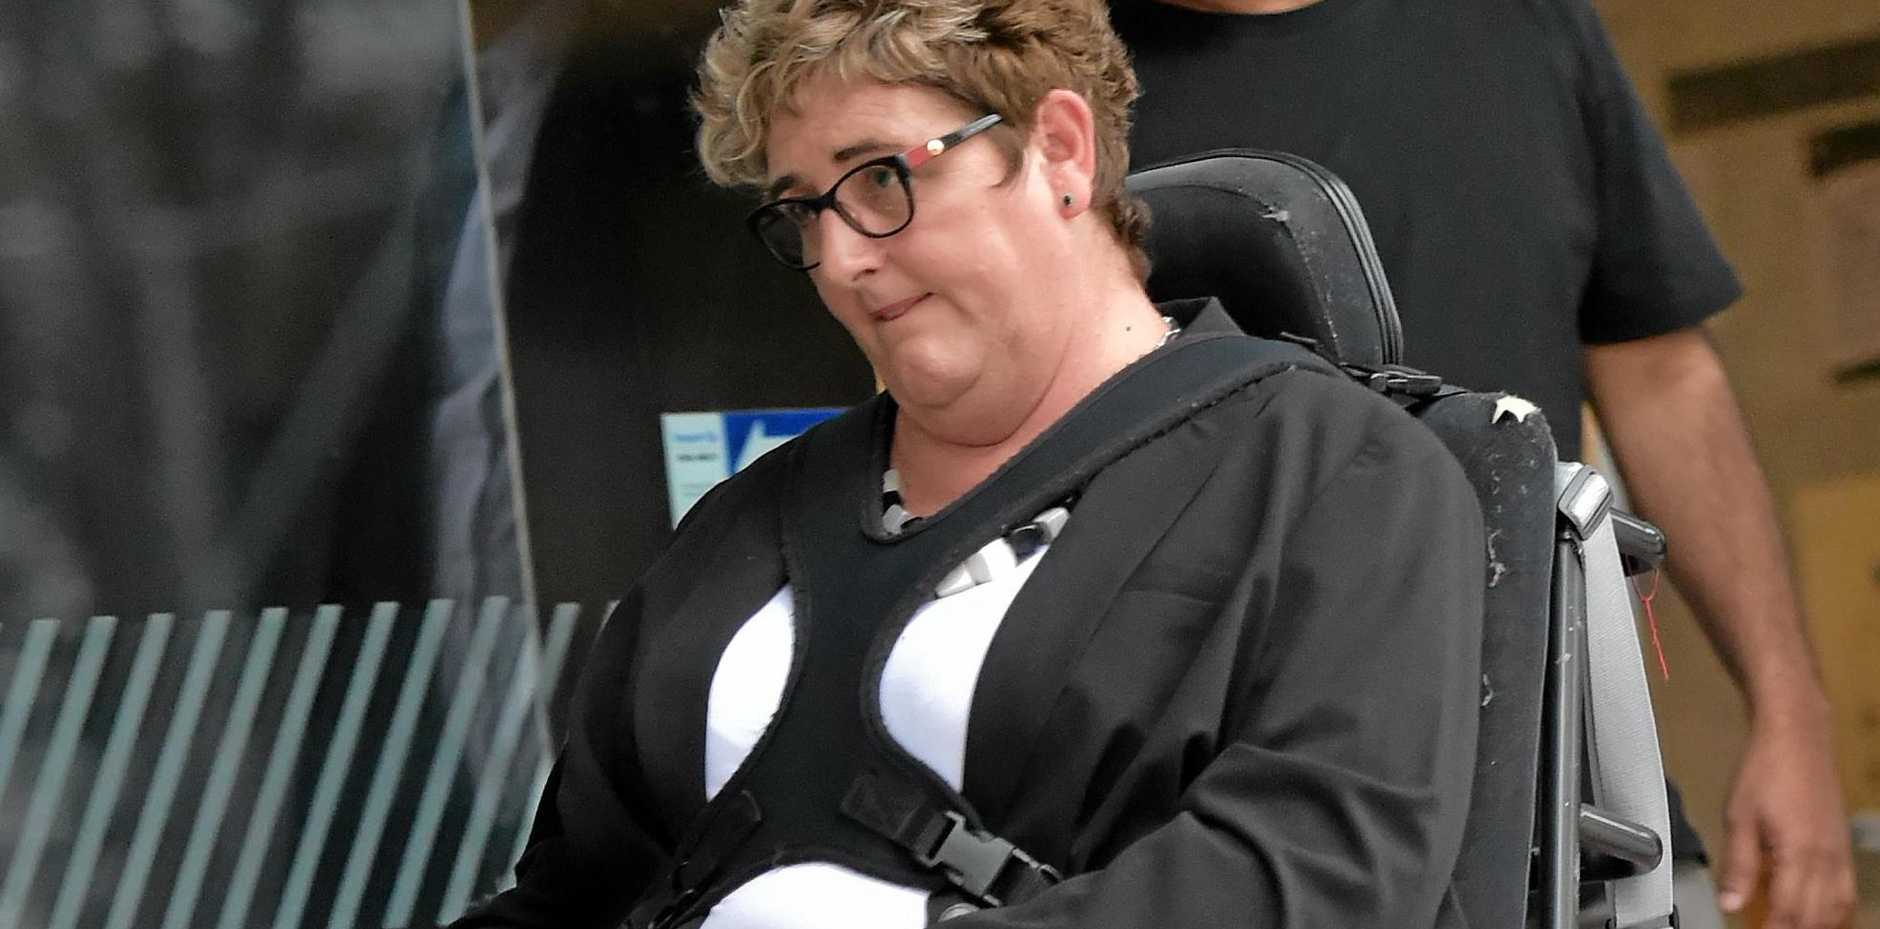 BE Lifestyle managing director Belinda Wardlaw leaves Maroochydore Court House after a July appearance at a coroner's inquest into the death of Leah Floyd.